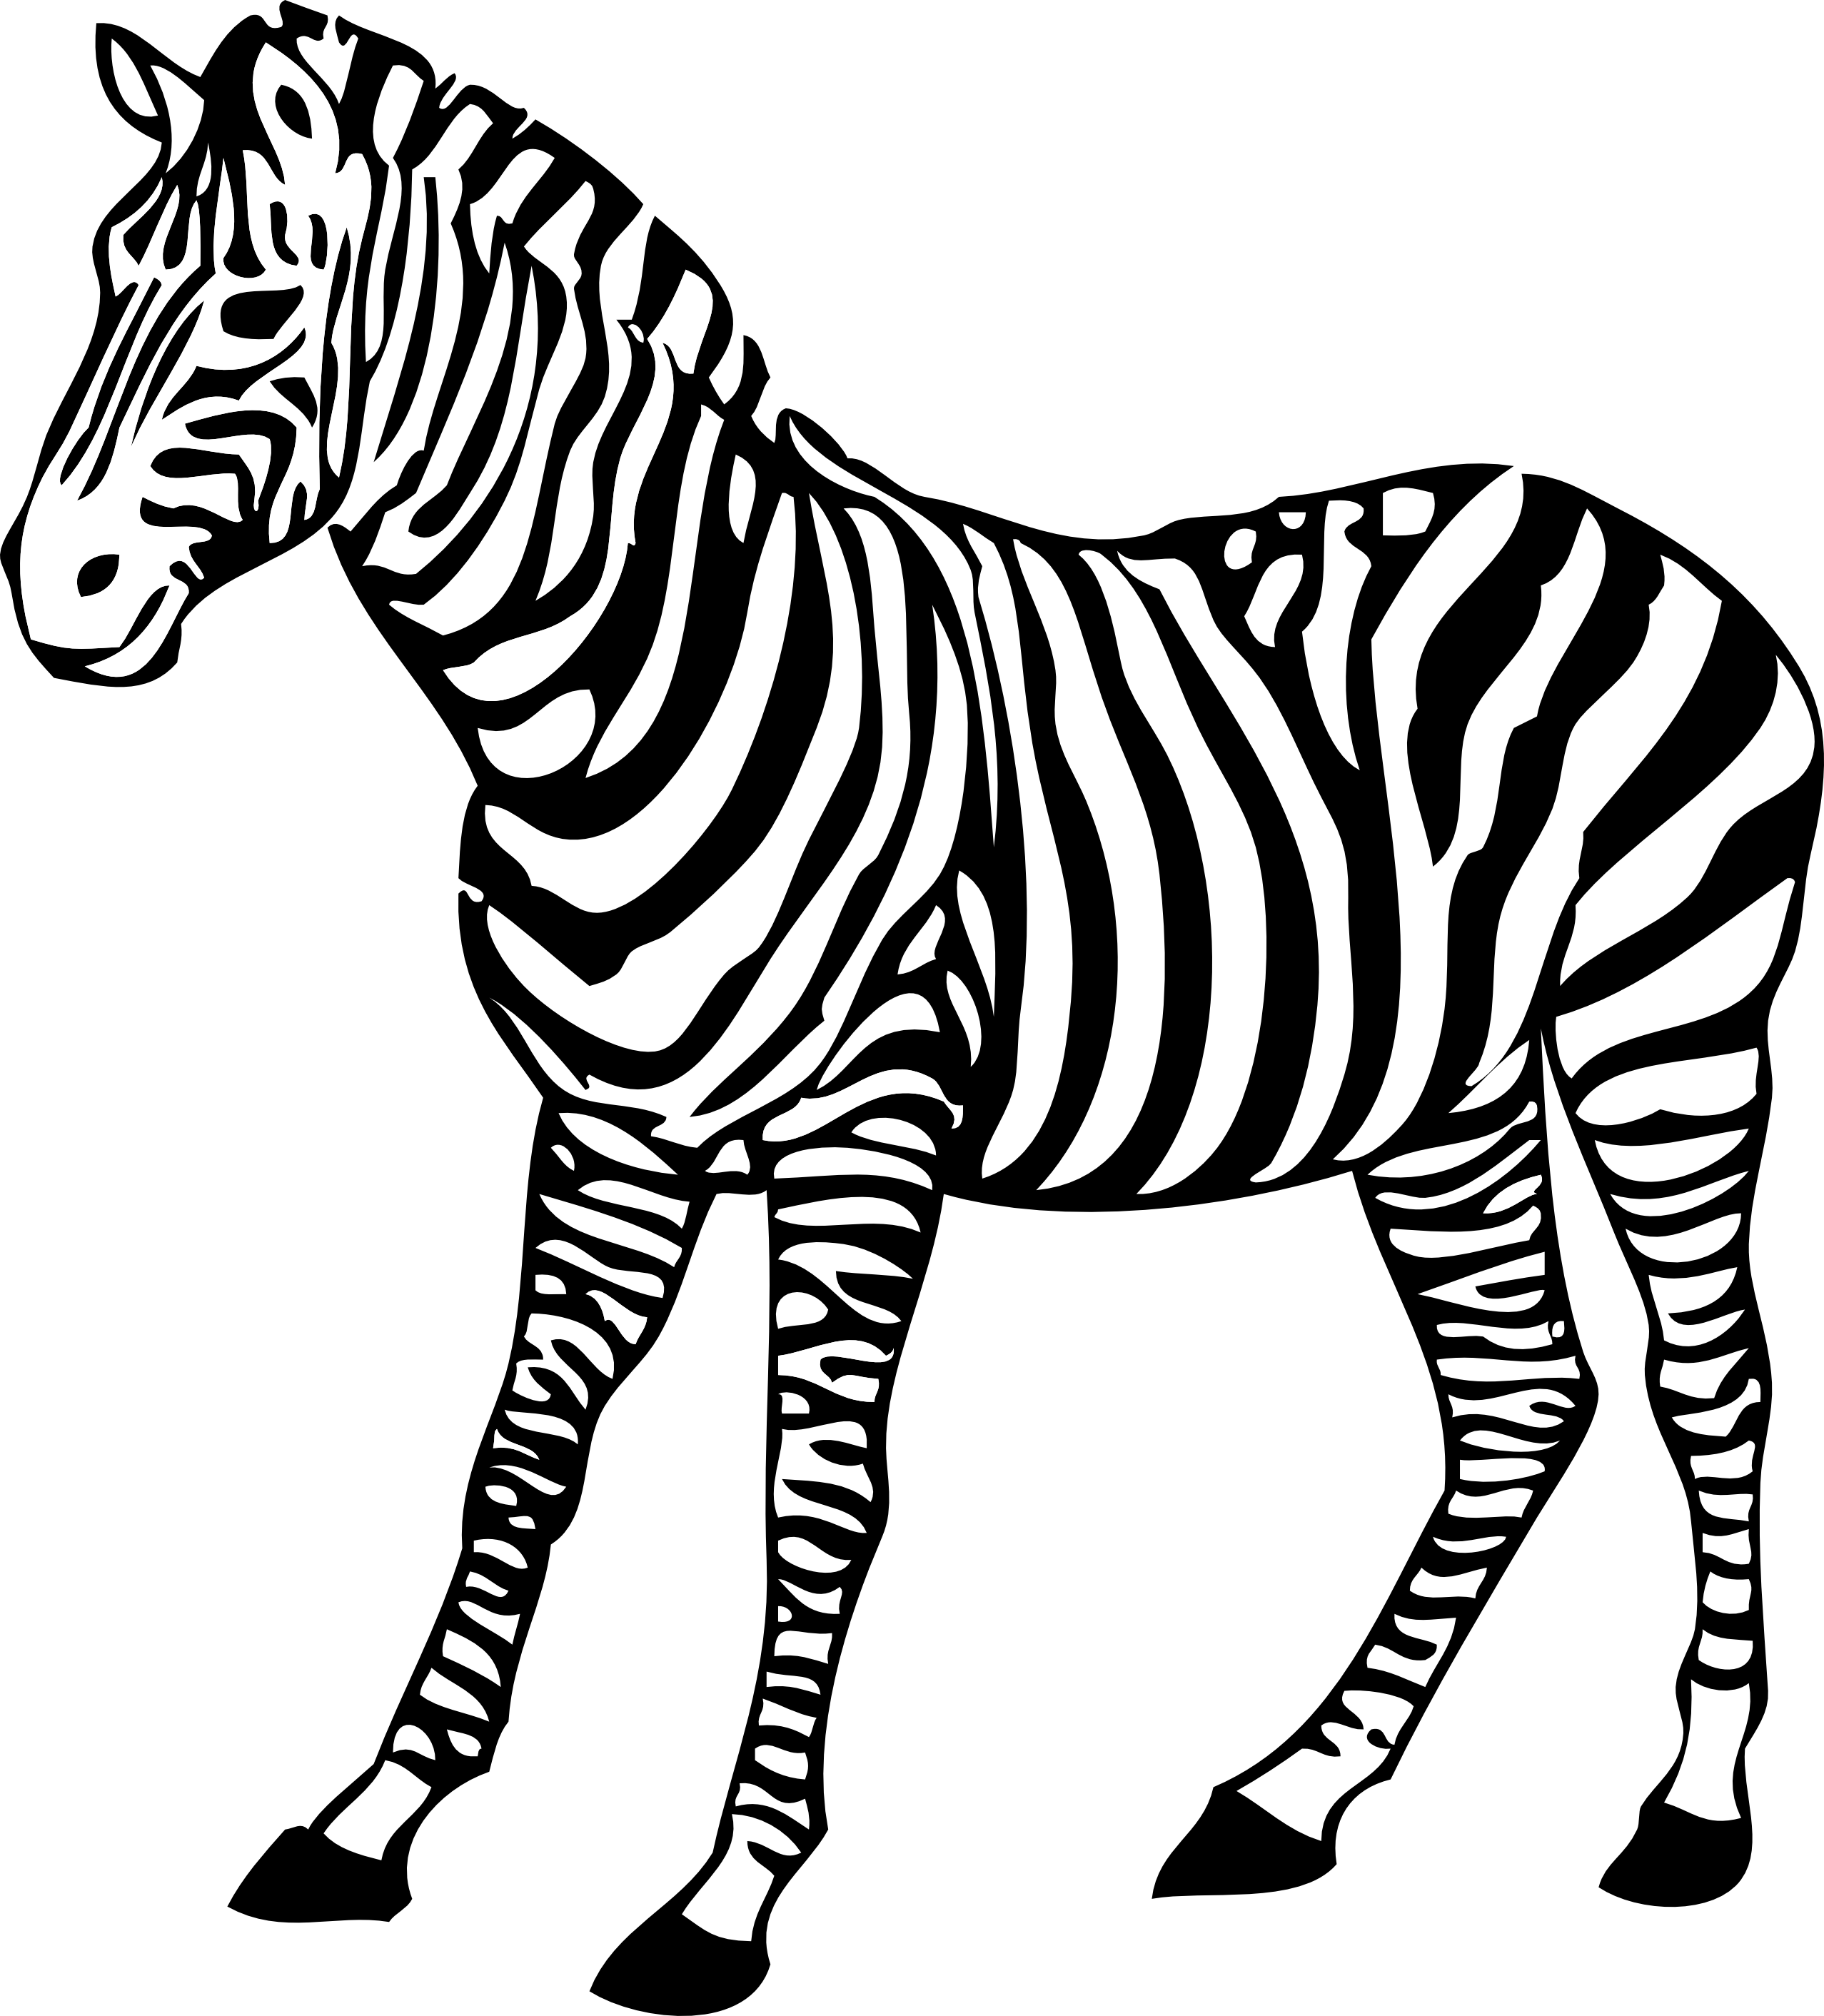 svg download Zebra panda free images. Black and white clipart